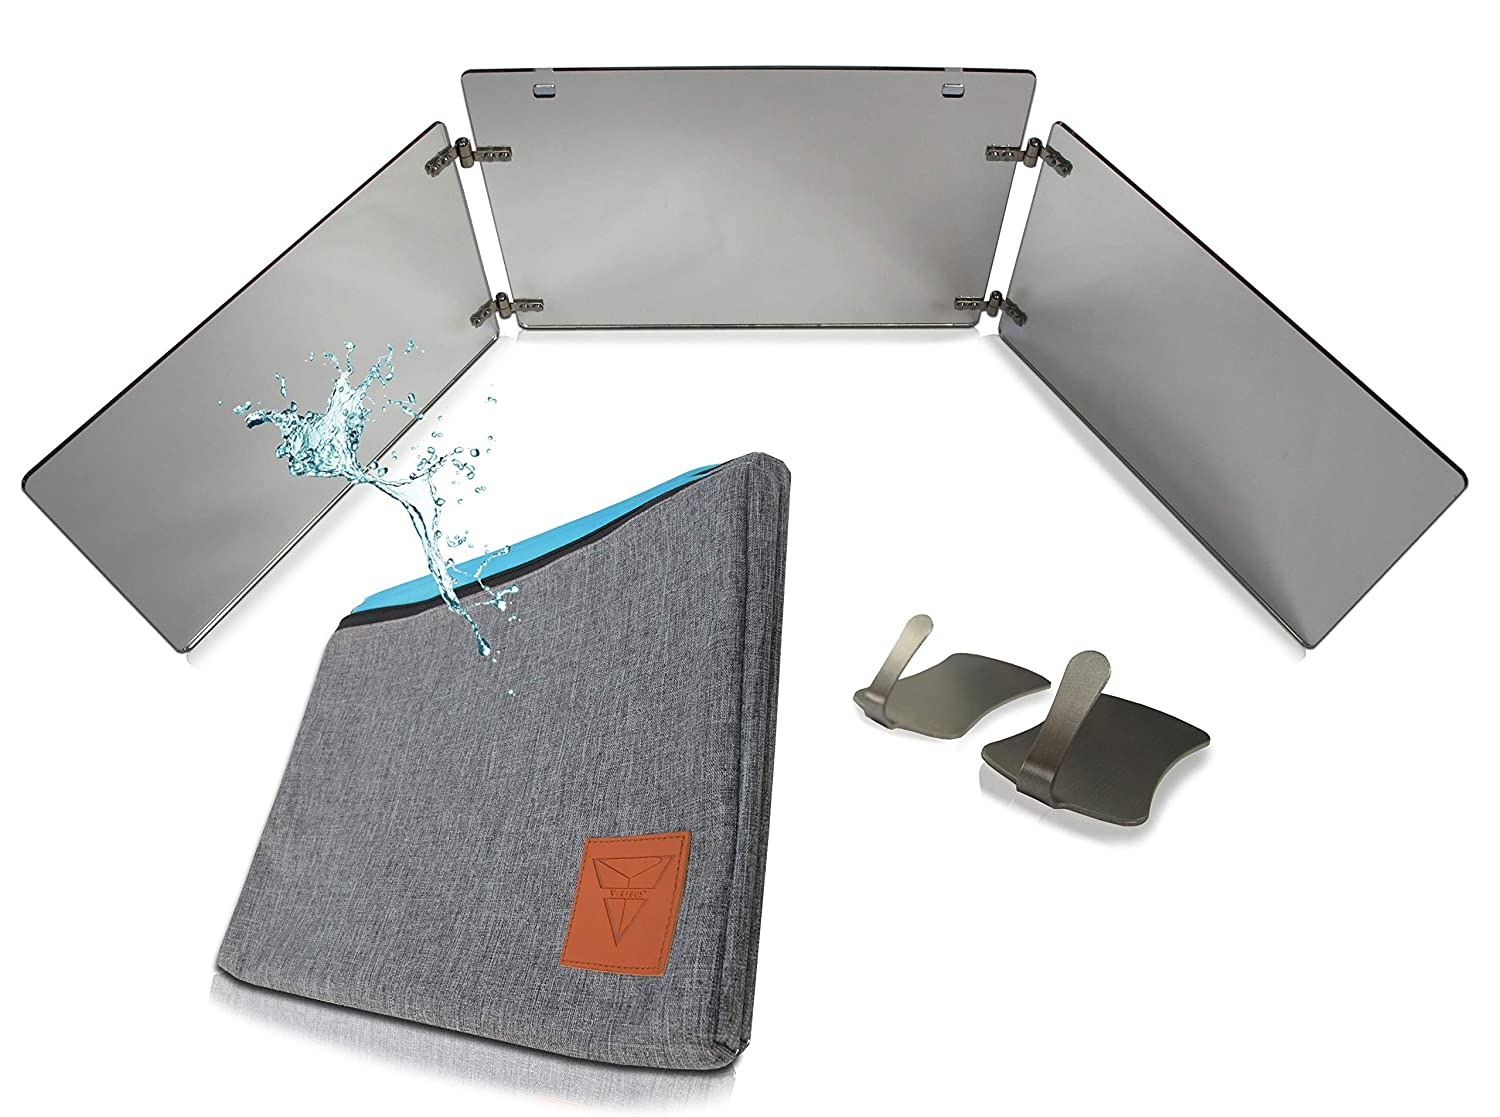 """GAT Trifold Mirror - 3 way mirror used for Self Hair Cutting, Fogless Shaving in the Shower, Makeup, Hair styling and Coloring. The perfect travel mirror. G.A.T. -""""Go Anywhere Tri fold"""" by Viribus."""